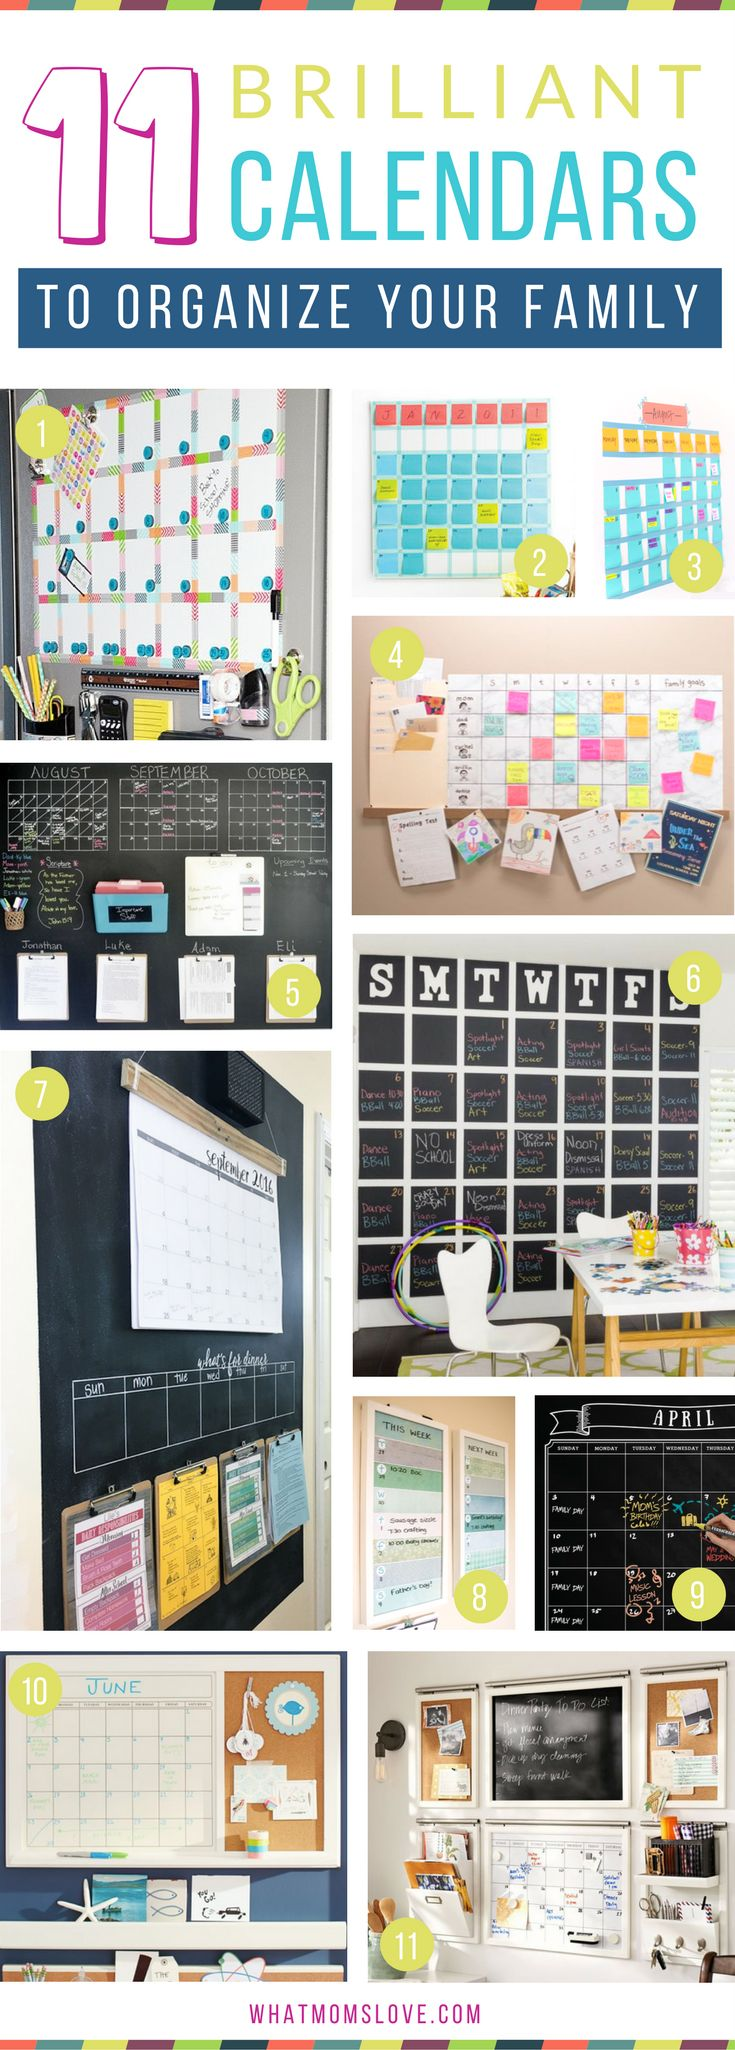 How to create a family wall calendar to organize your life | DIY Calendars and Command Center ideas perfect for summertime or back to school. Plus more tips, hacks and tricks to survive summer with your kids